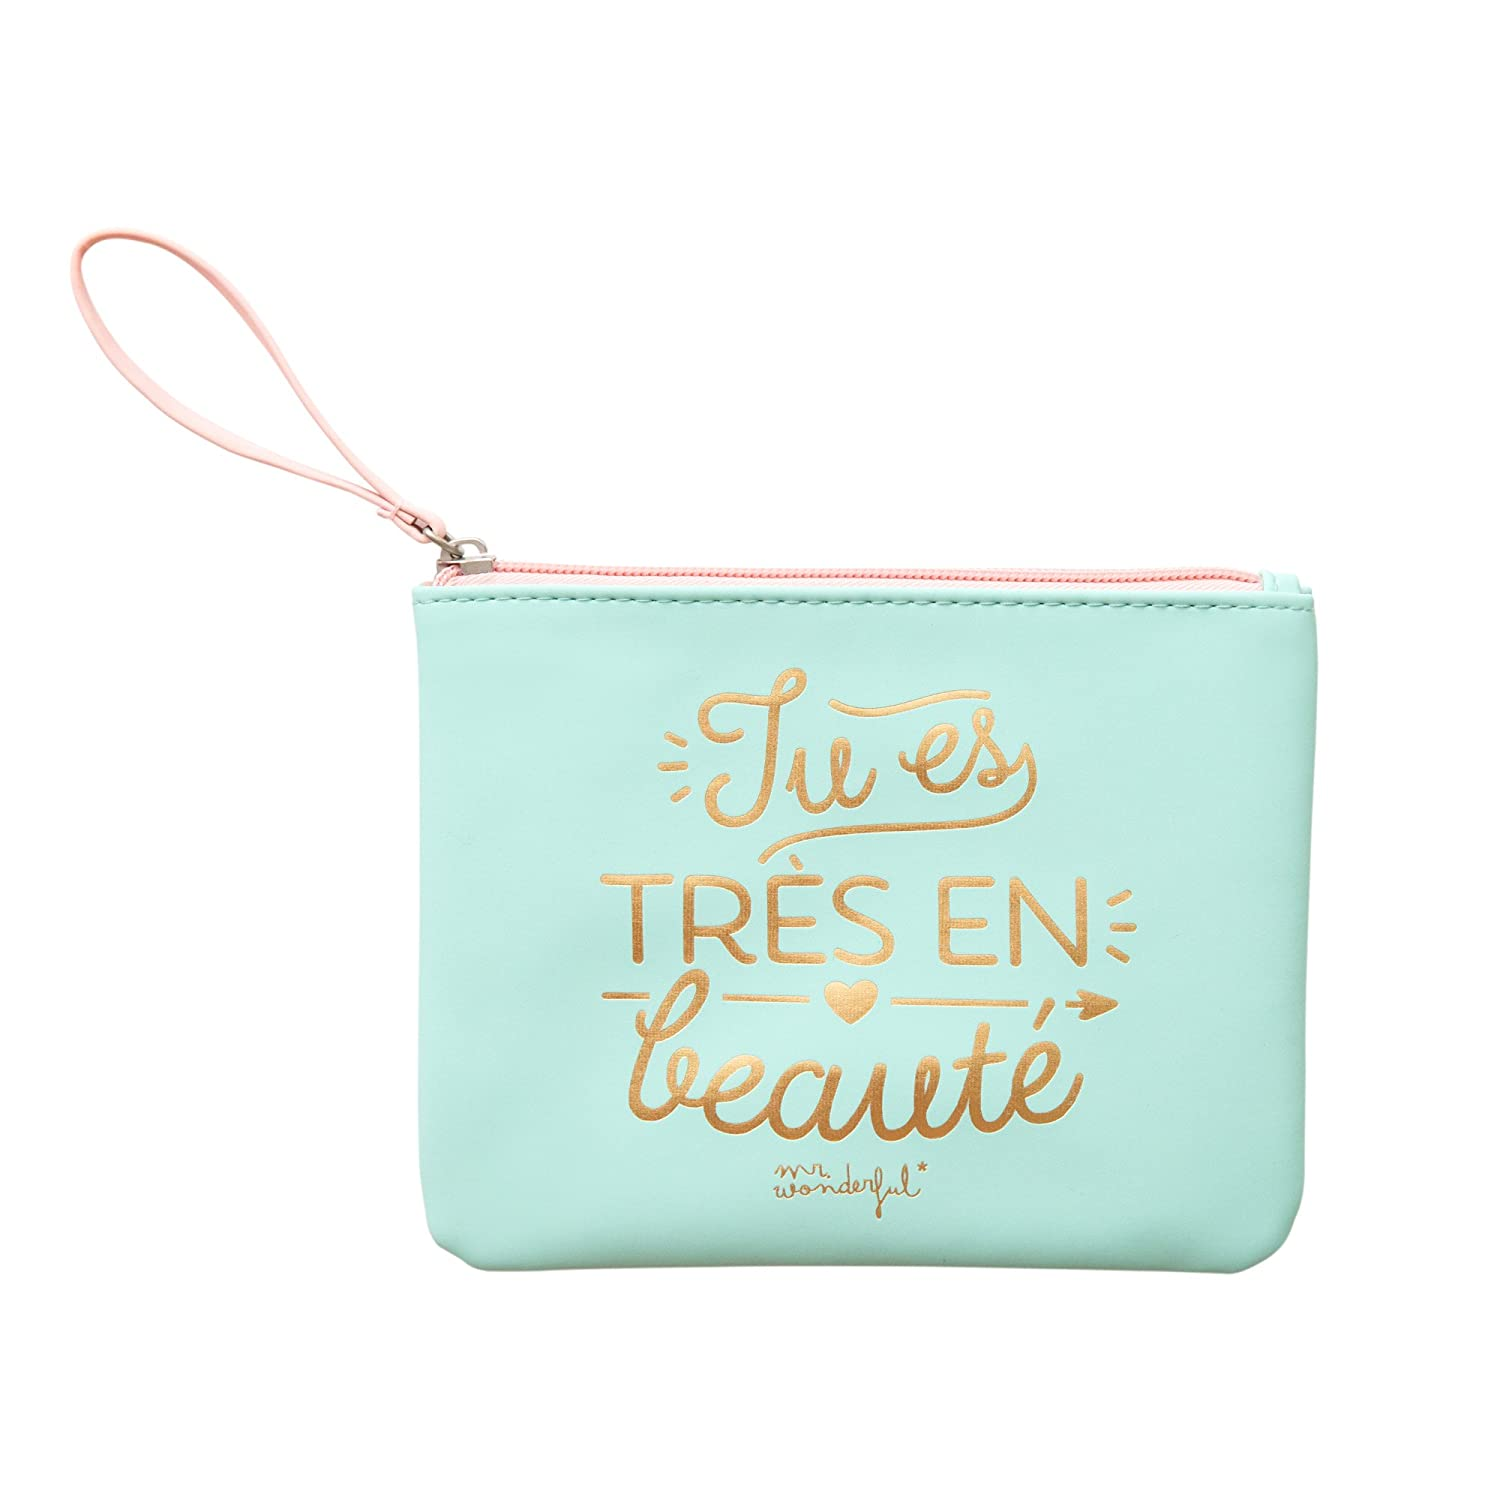 Mr. Wonderful woa03749fr - Bolsa de aseo - tu es muy en ...